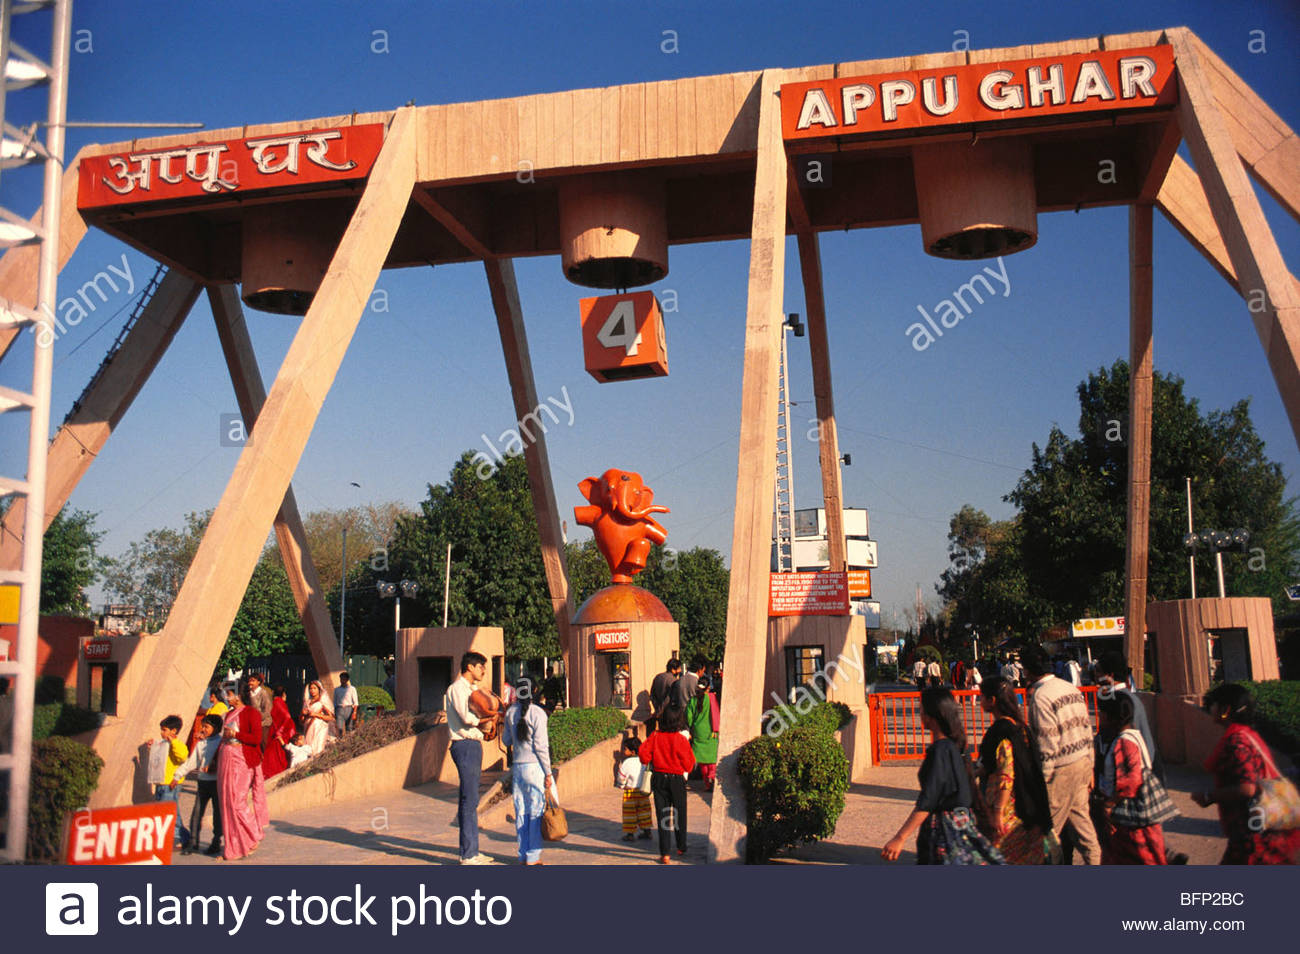 Mak 64712 appu ghar amusement park delhi india stock photo mak 64712 appu ghar amusement park delhi india altavistaventures Gallery